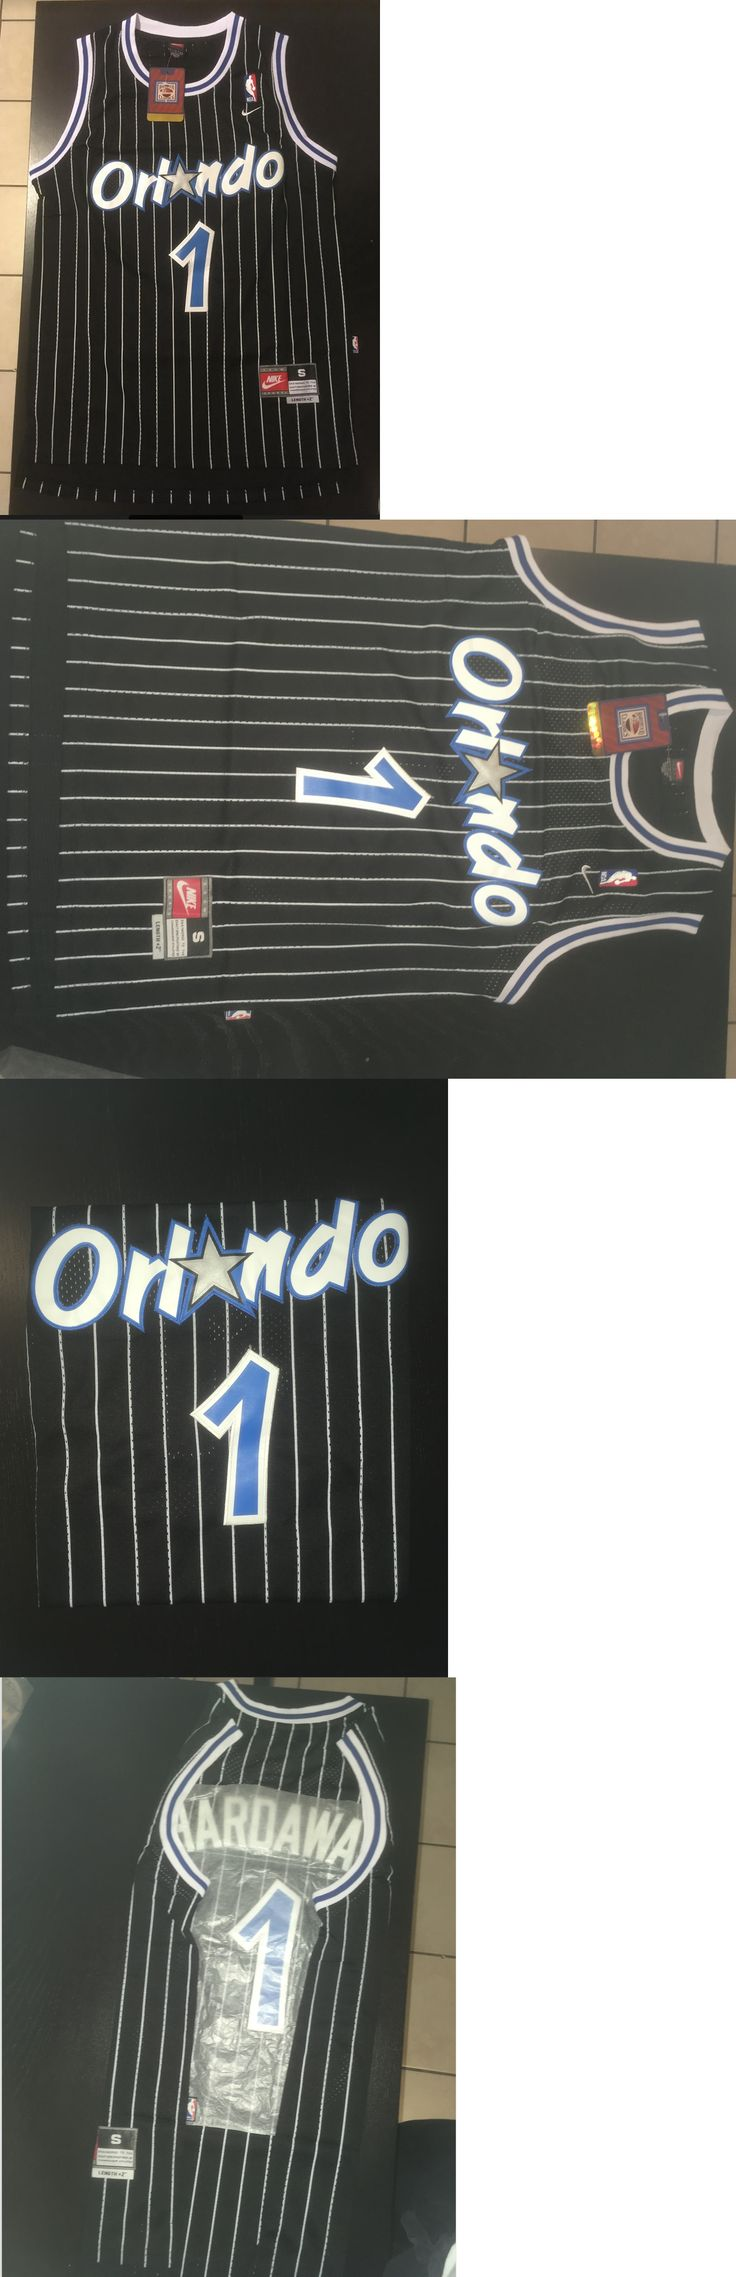 Basketball-NBA 24442: Penny Hardaway Orlando Magic Stitched Throwback Swingman Black Jersey Mens Sizes -> BUY IT NOW ONLY: $44.99 on eBay!